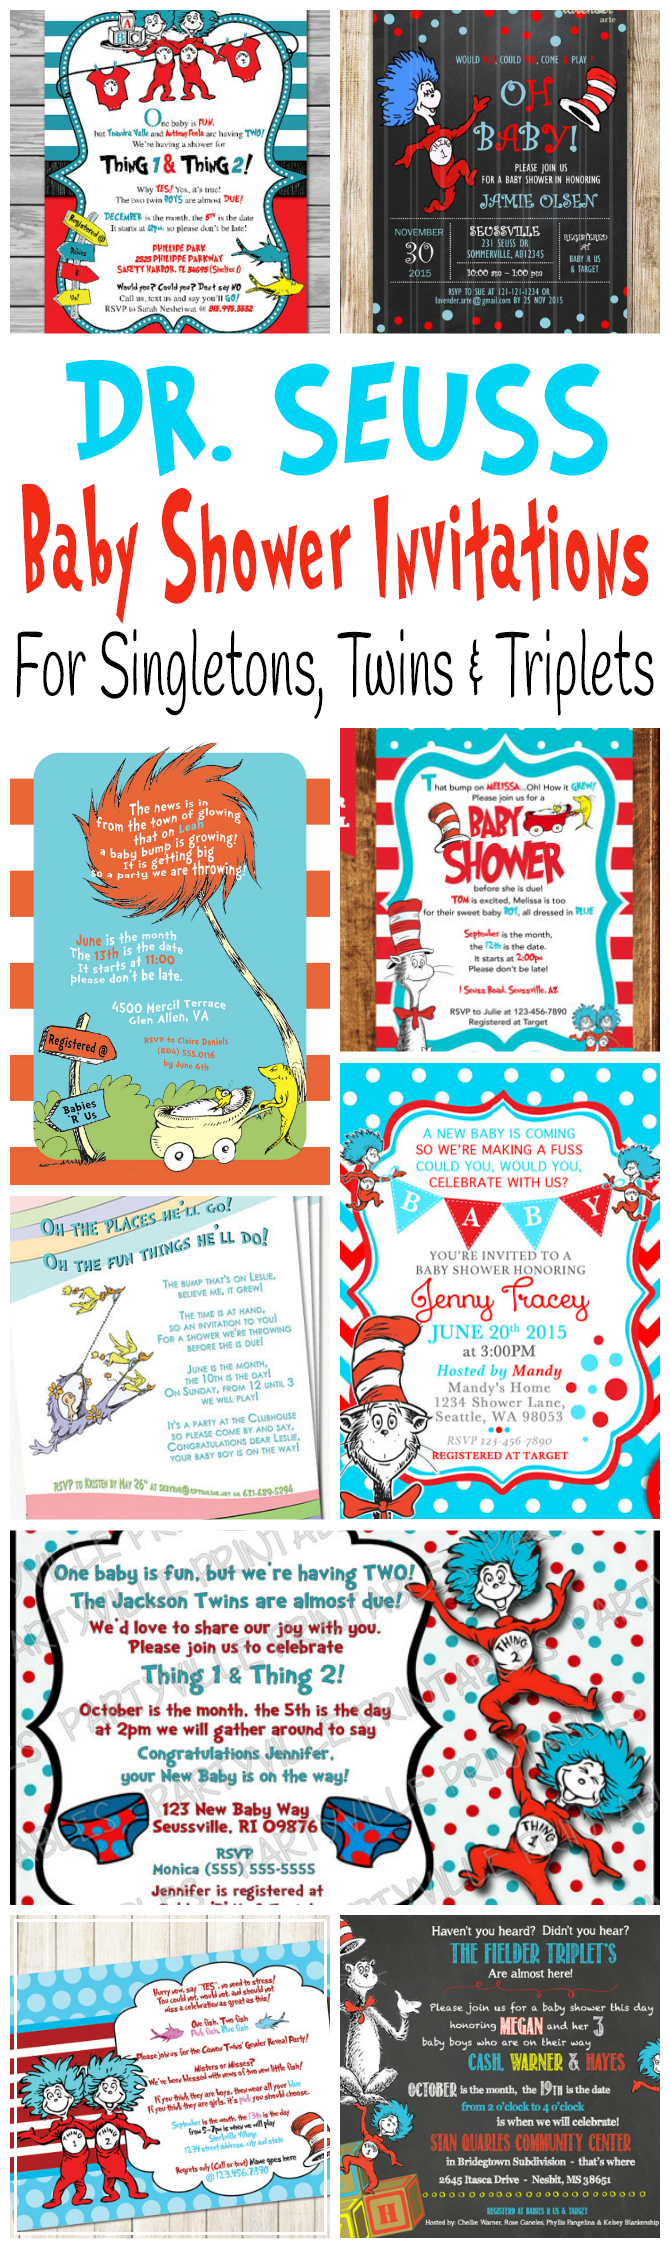 Cute and adorable printable Dr. Seuss baby shower invitations for celebrating the birth of one baby, twins and triplets.